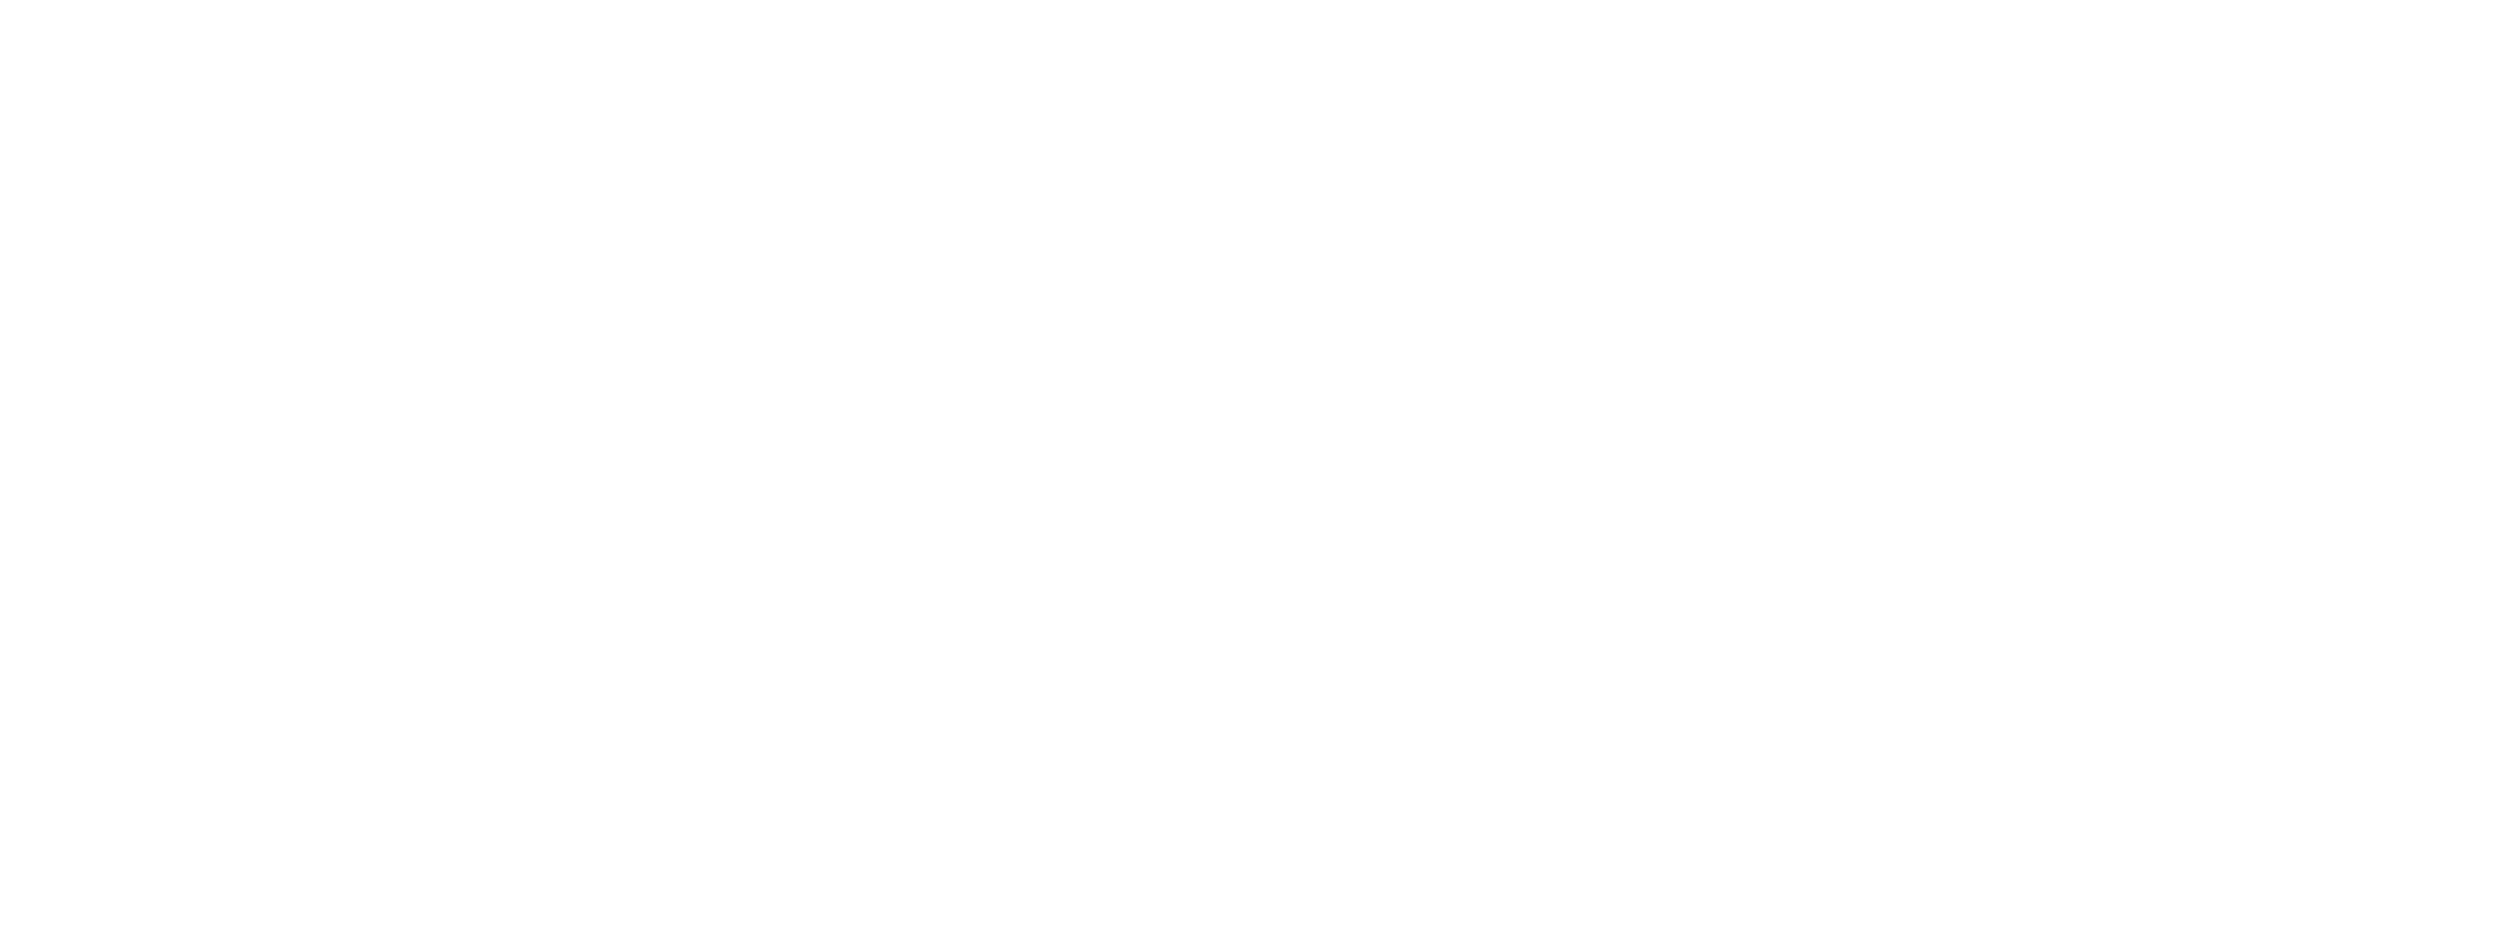 Compass-group-logo.png